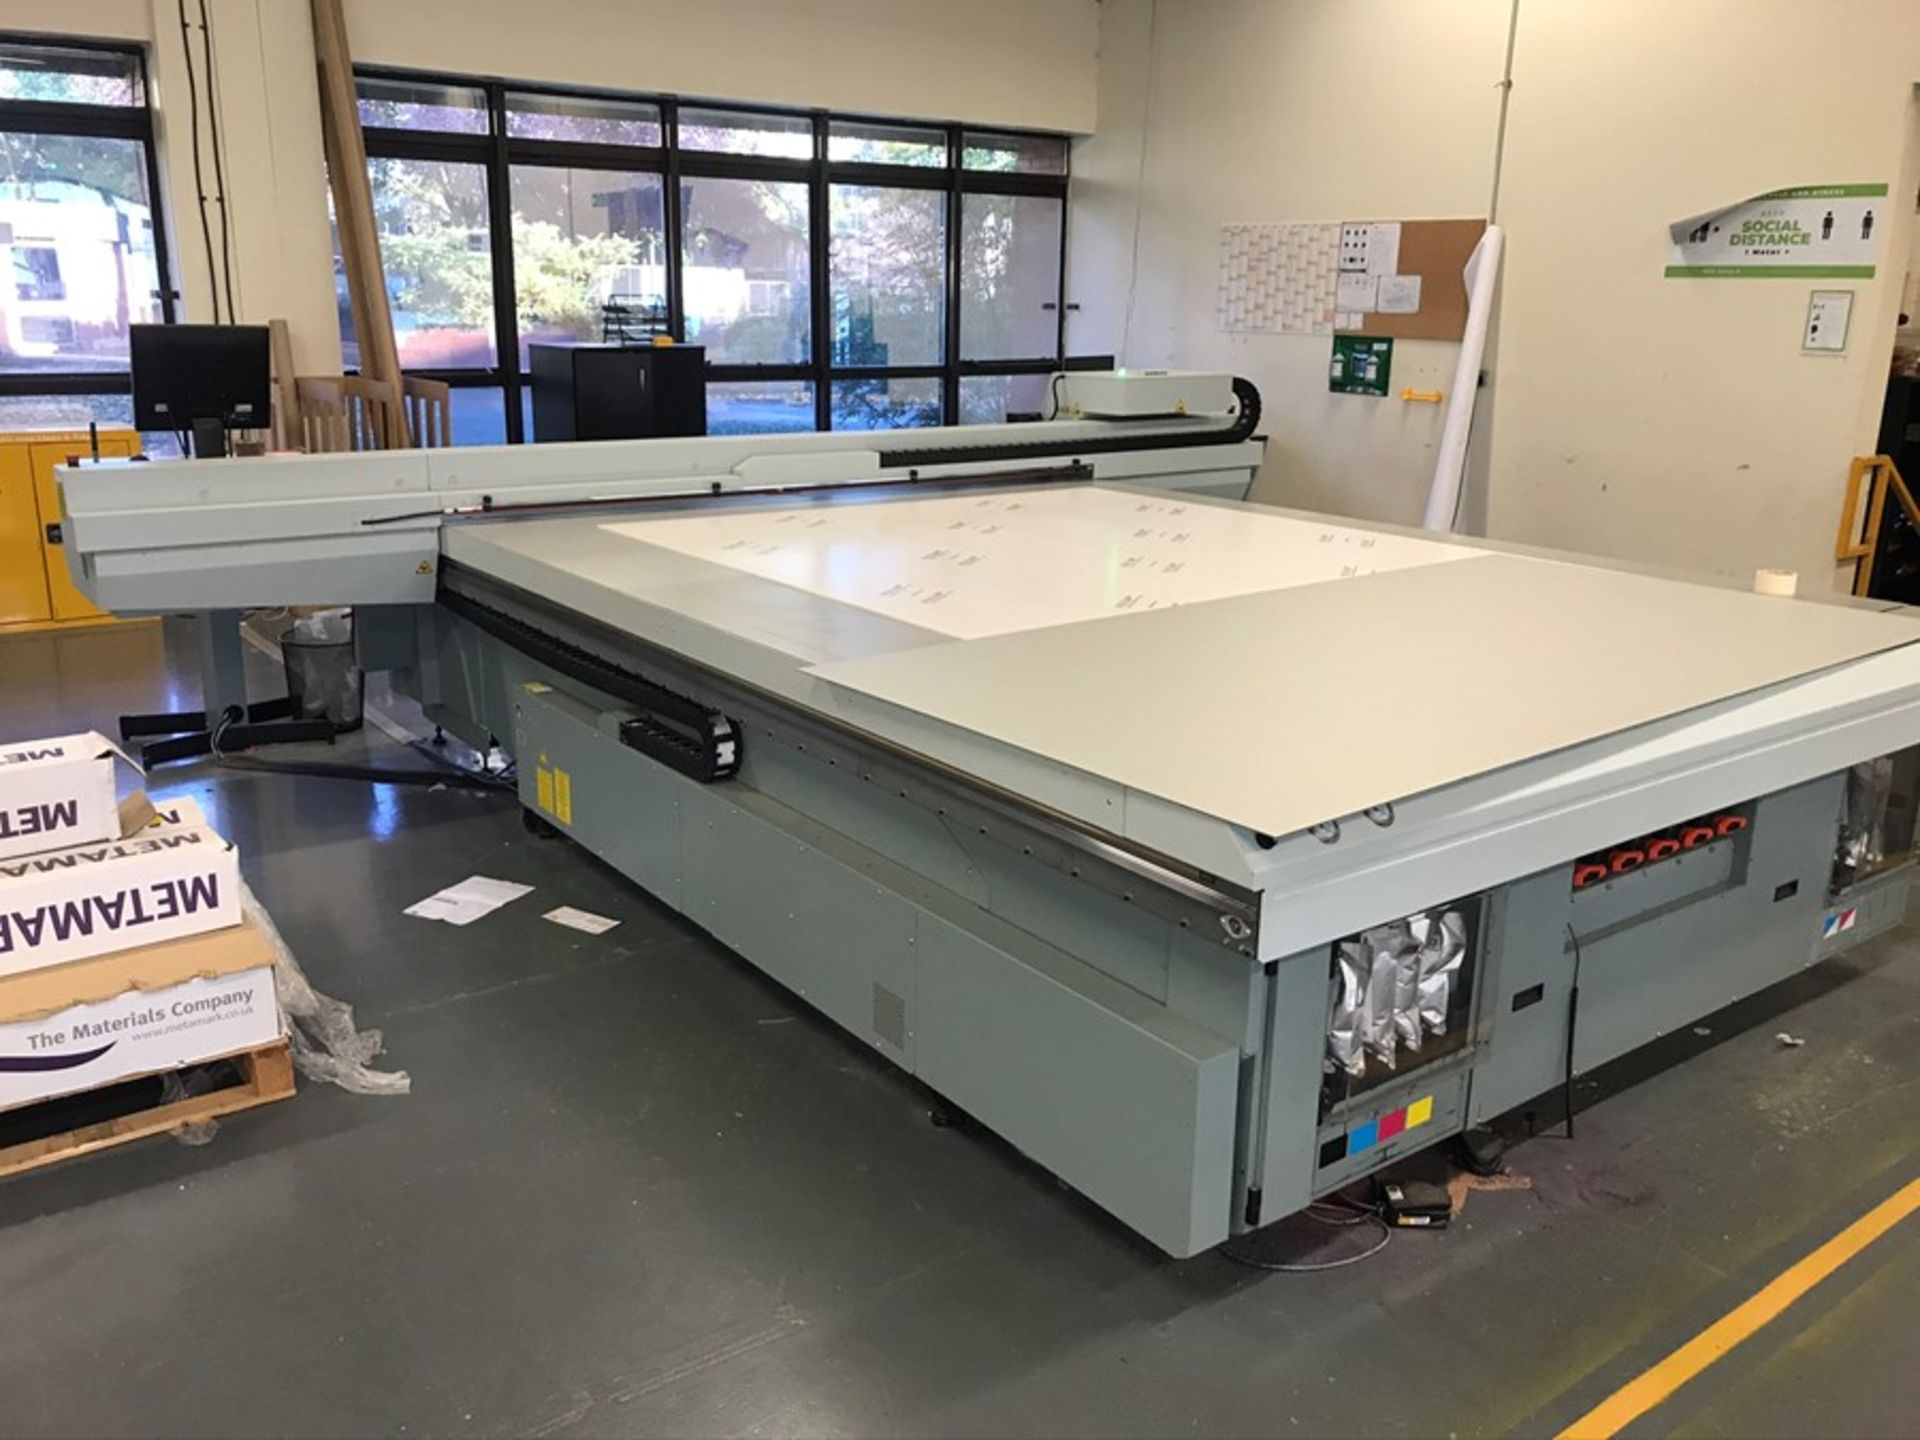 Oce Arizona 660 XT UV flatbed printer (2015) - Image 5 of 22